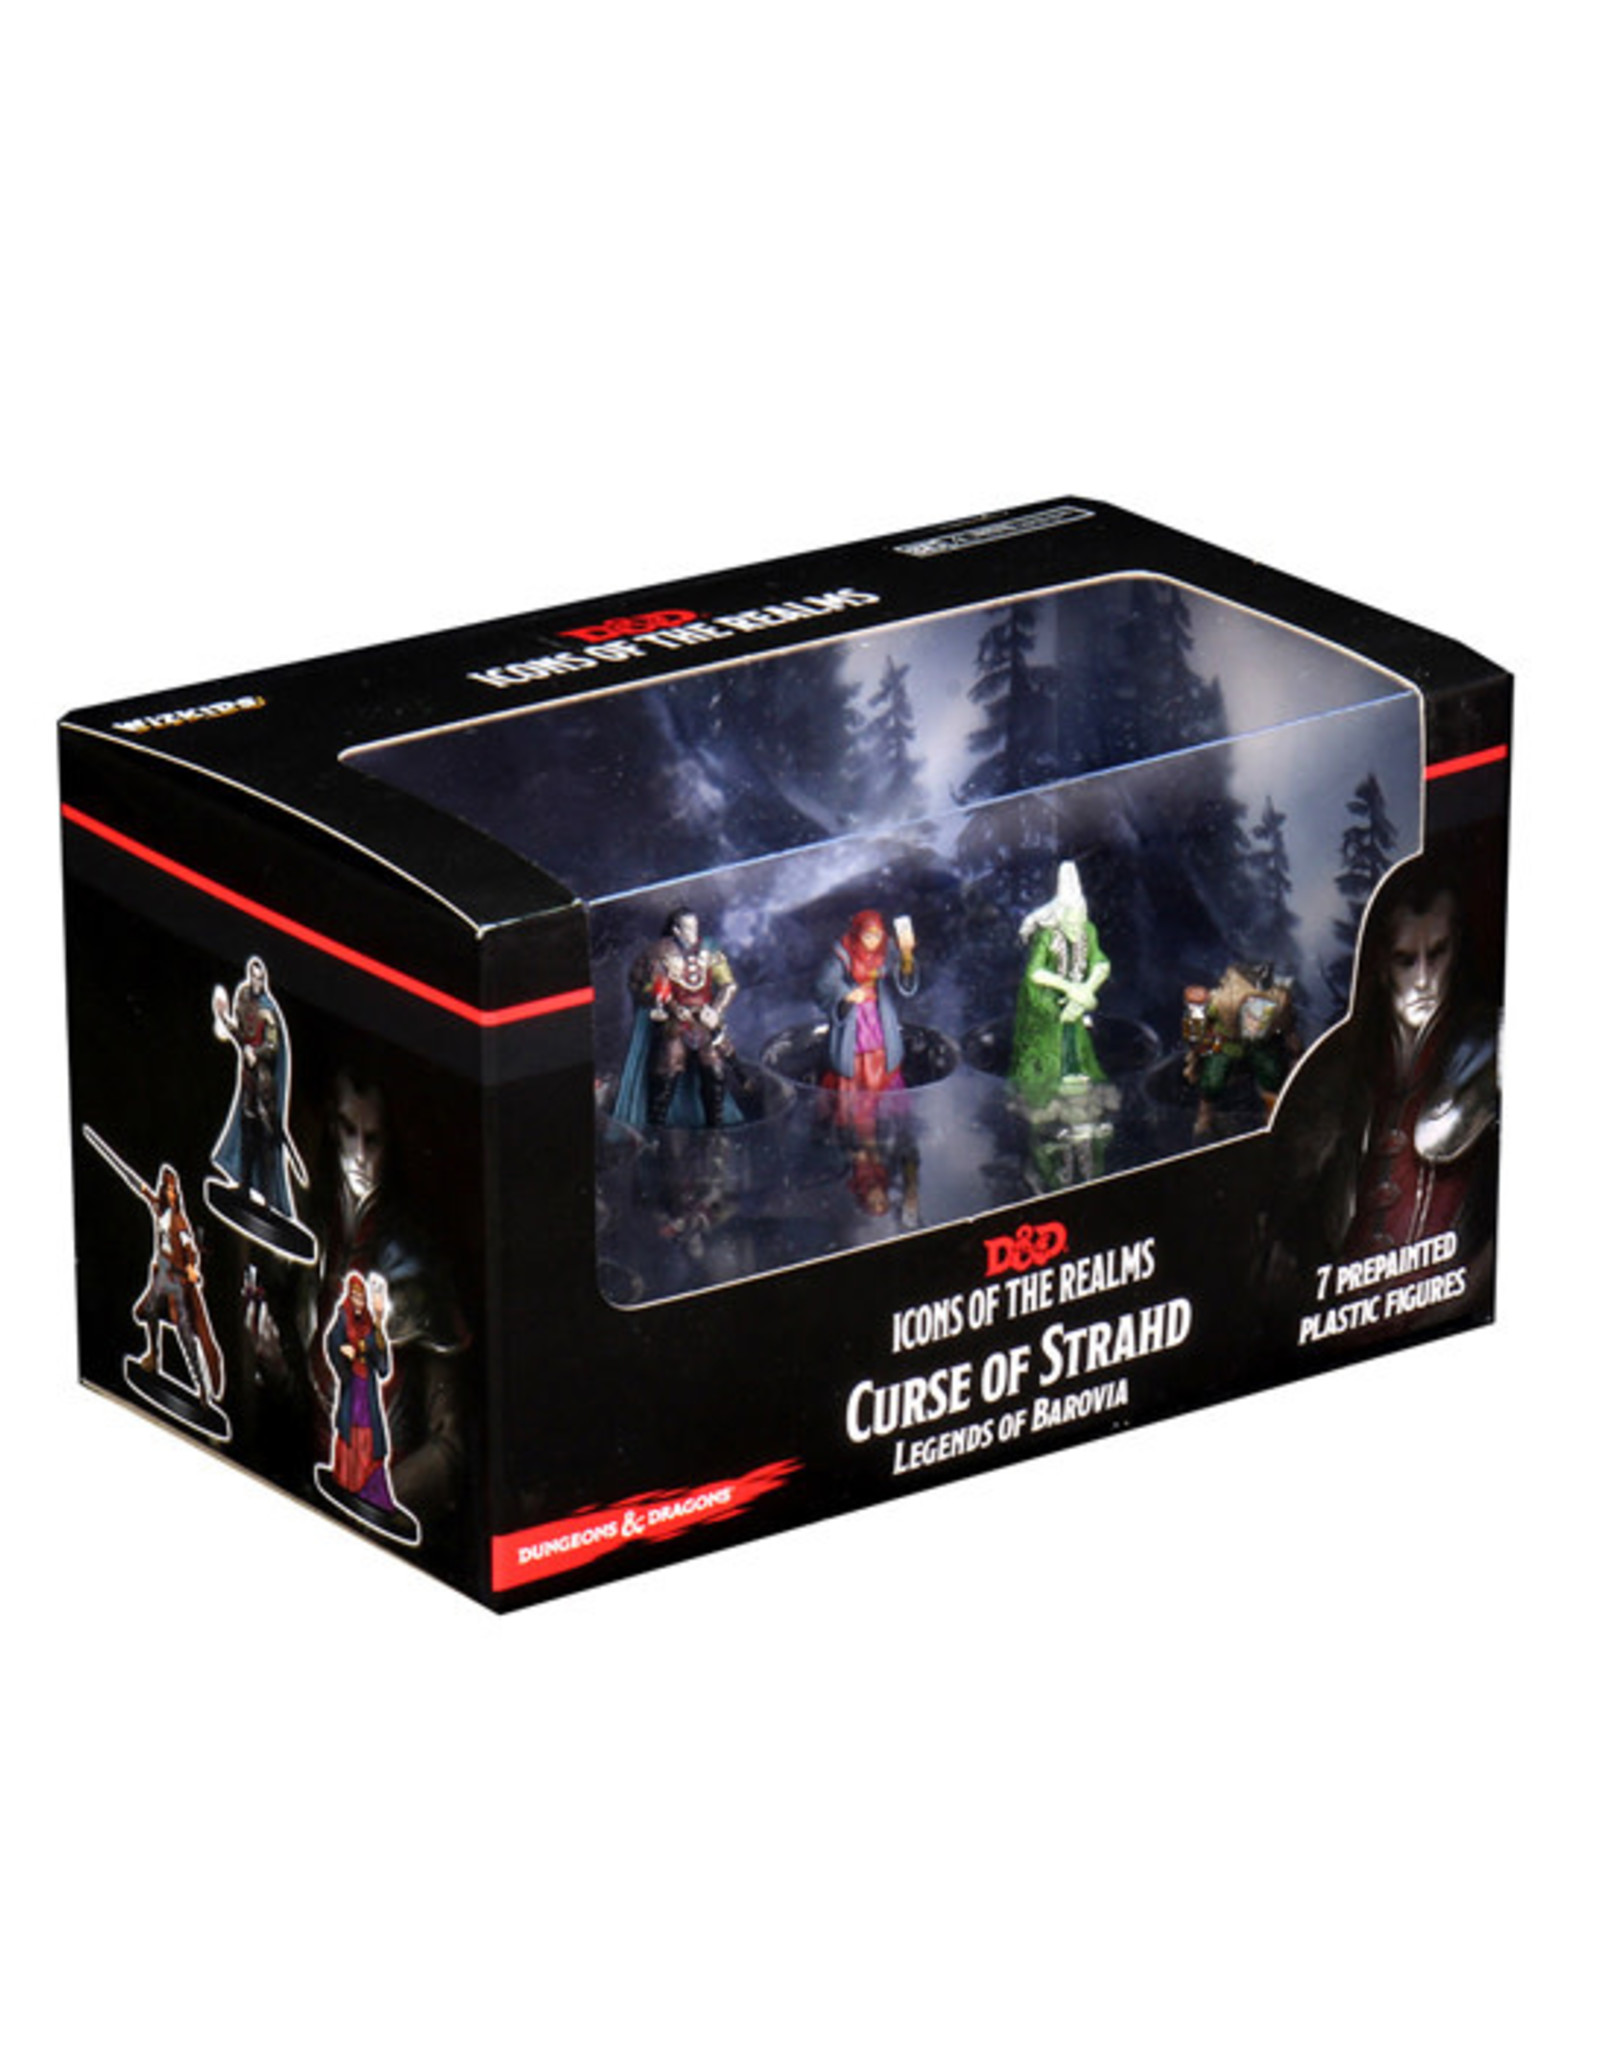 Dungeons & Dragons Dungeons & Dragons: Icons of the Realms - Premium Box Set - Curse of Strahd - Legends of Barovia